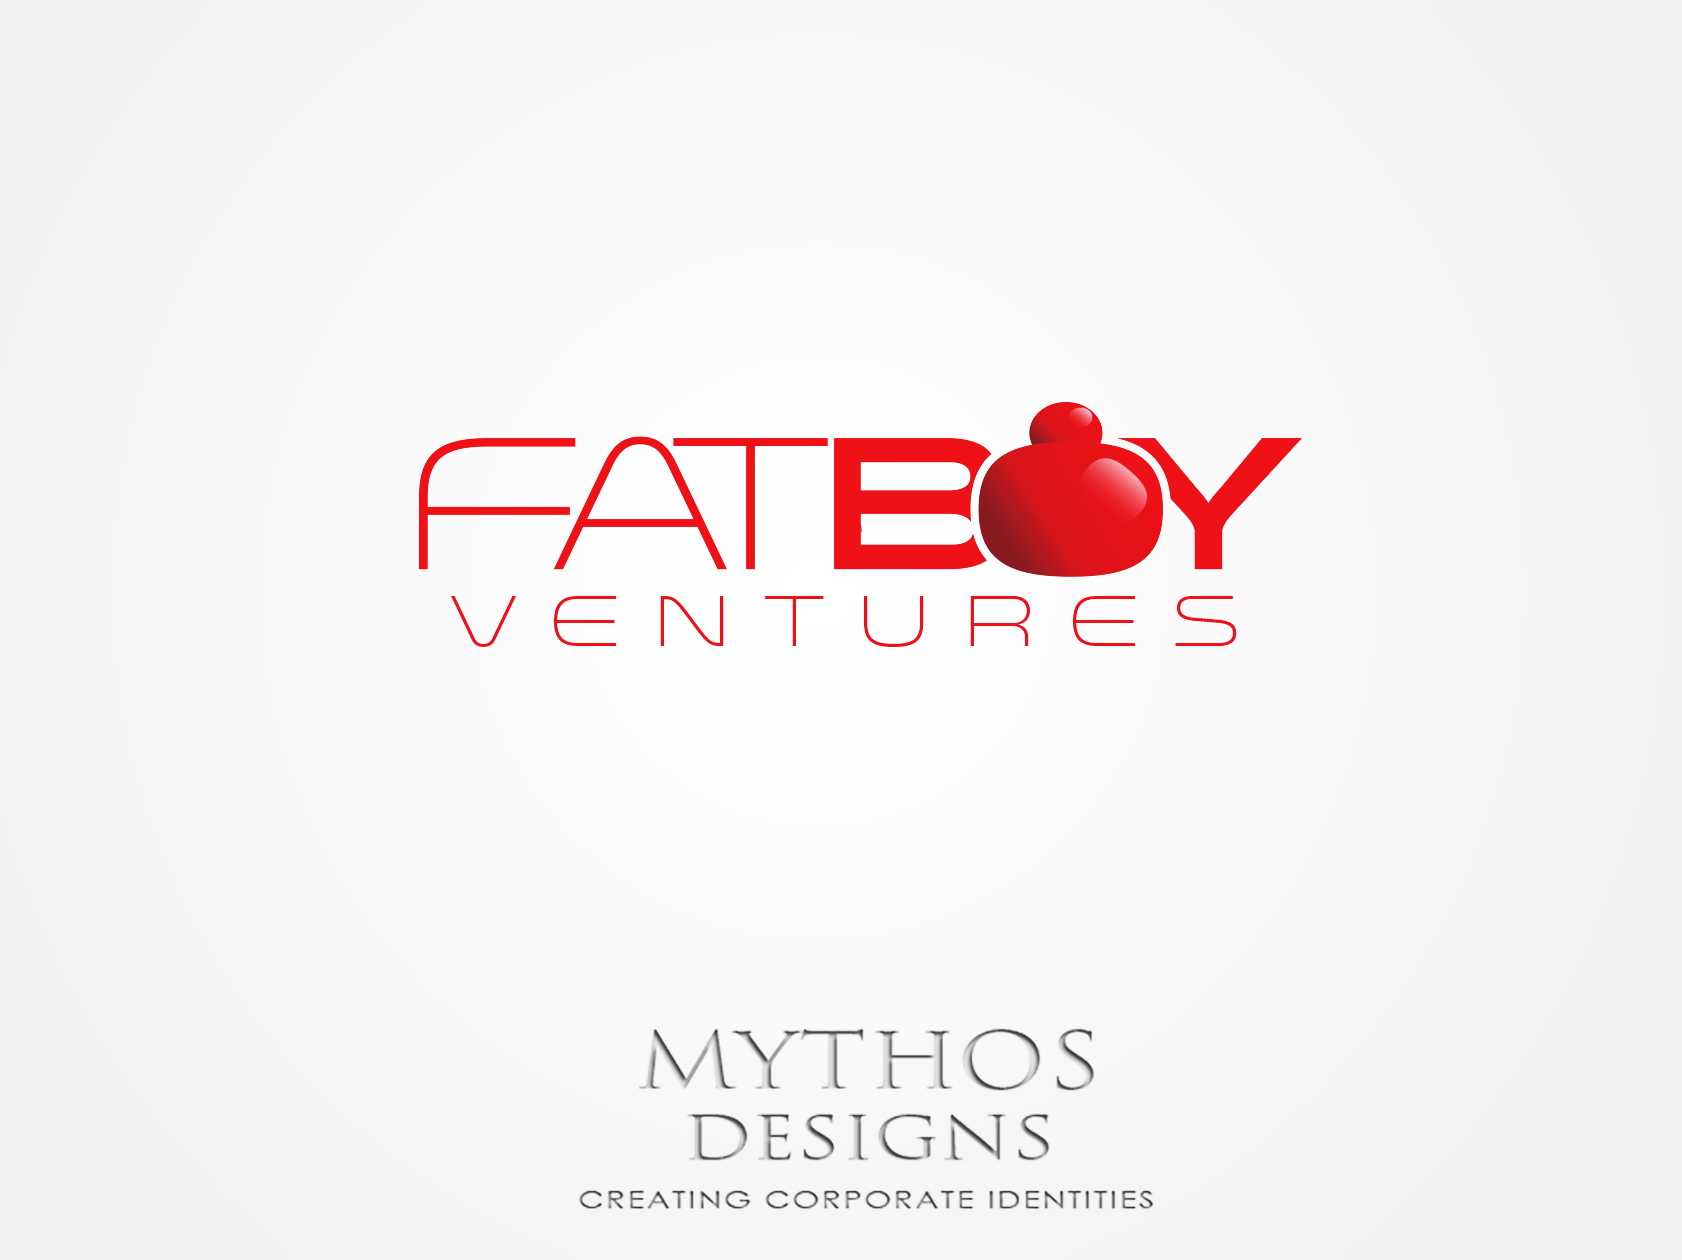 Logo Design by Mythos Designs - Entry No. 88 in the Logo Design Contest Fun Logo Design for Fat Boy Ventures.